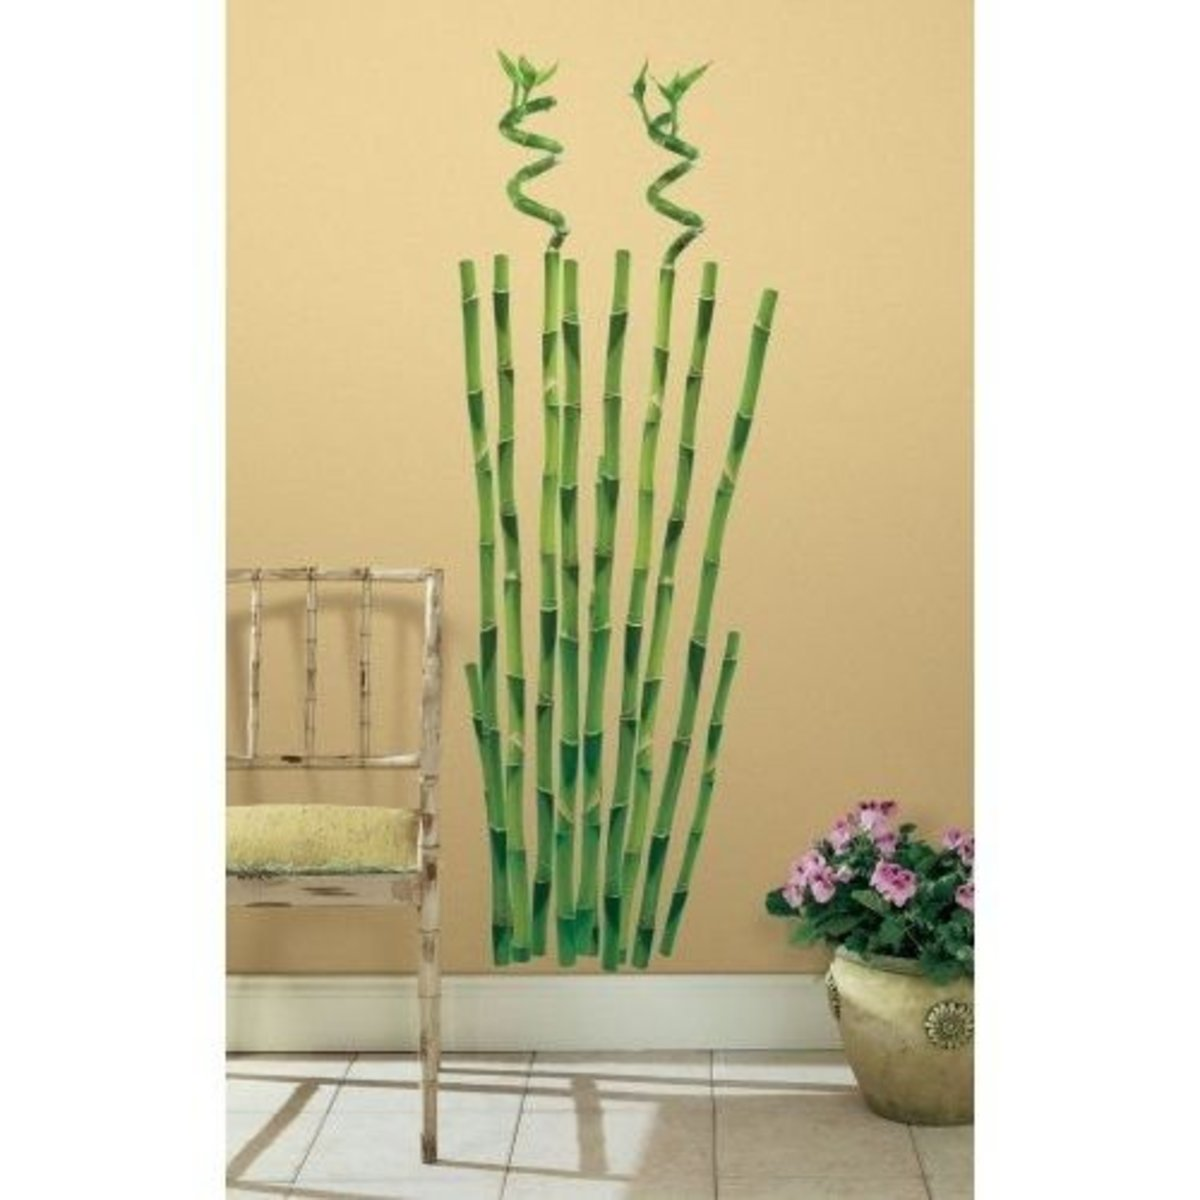 Bamboo wall stencils